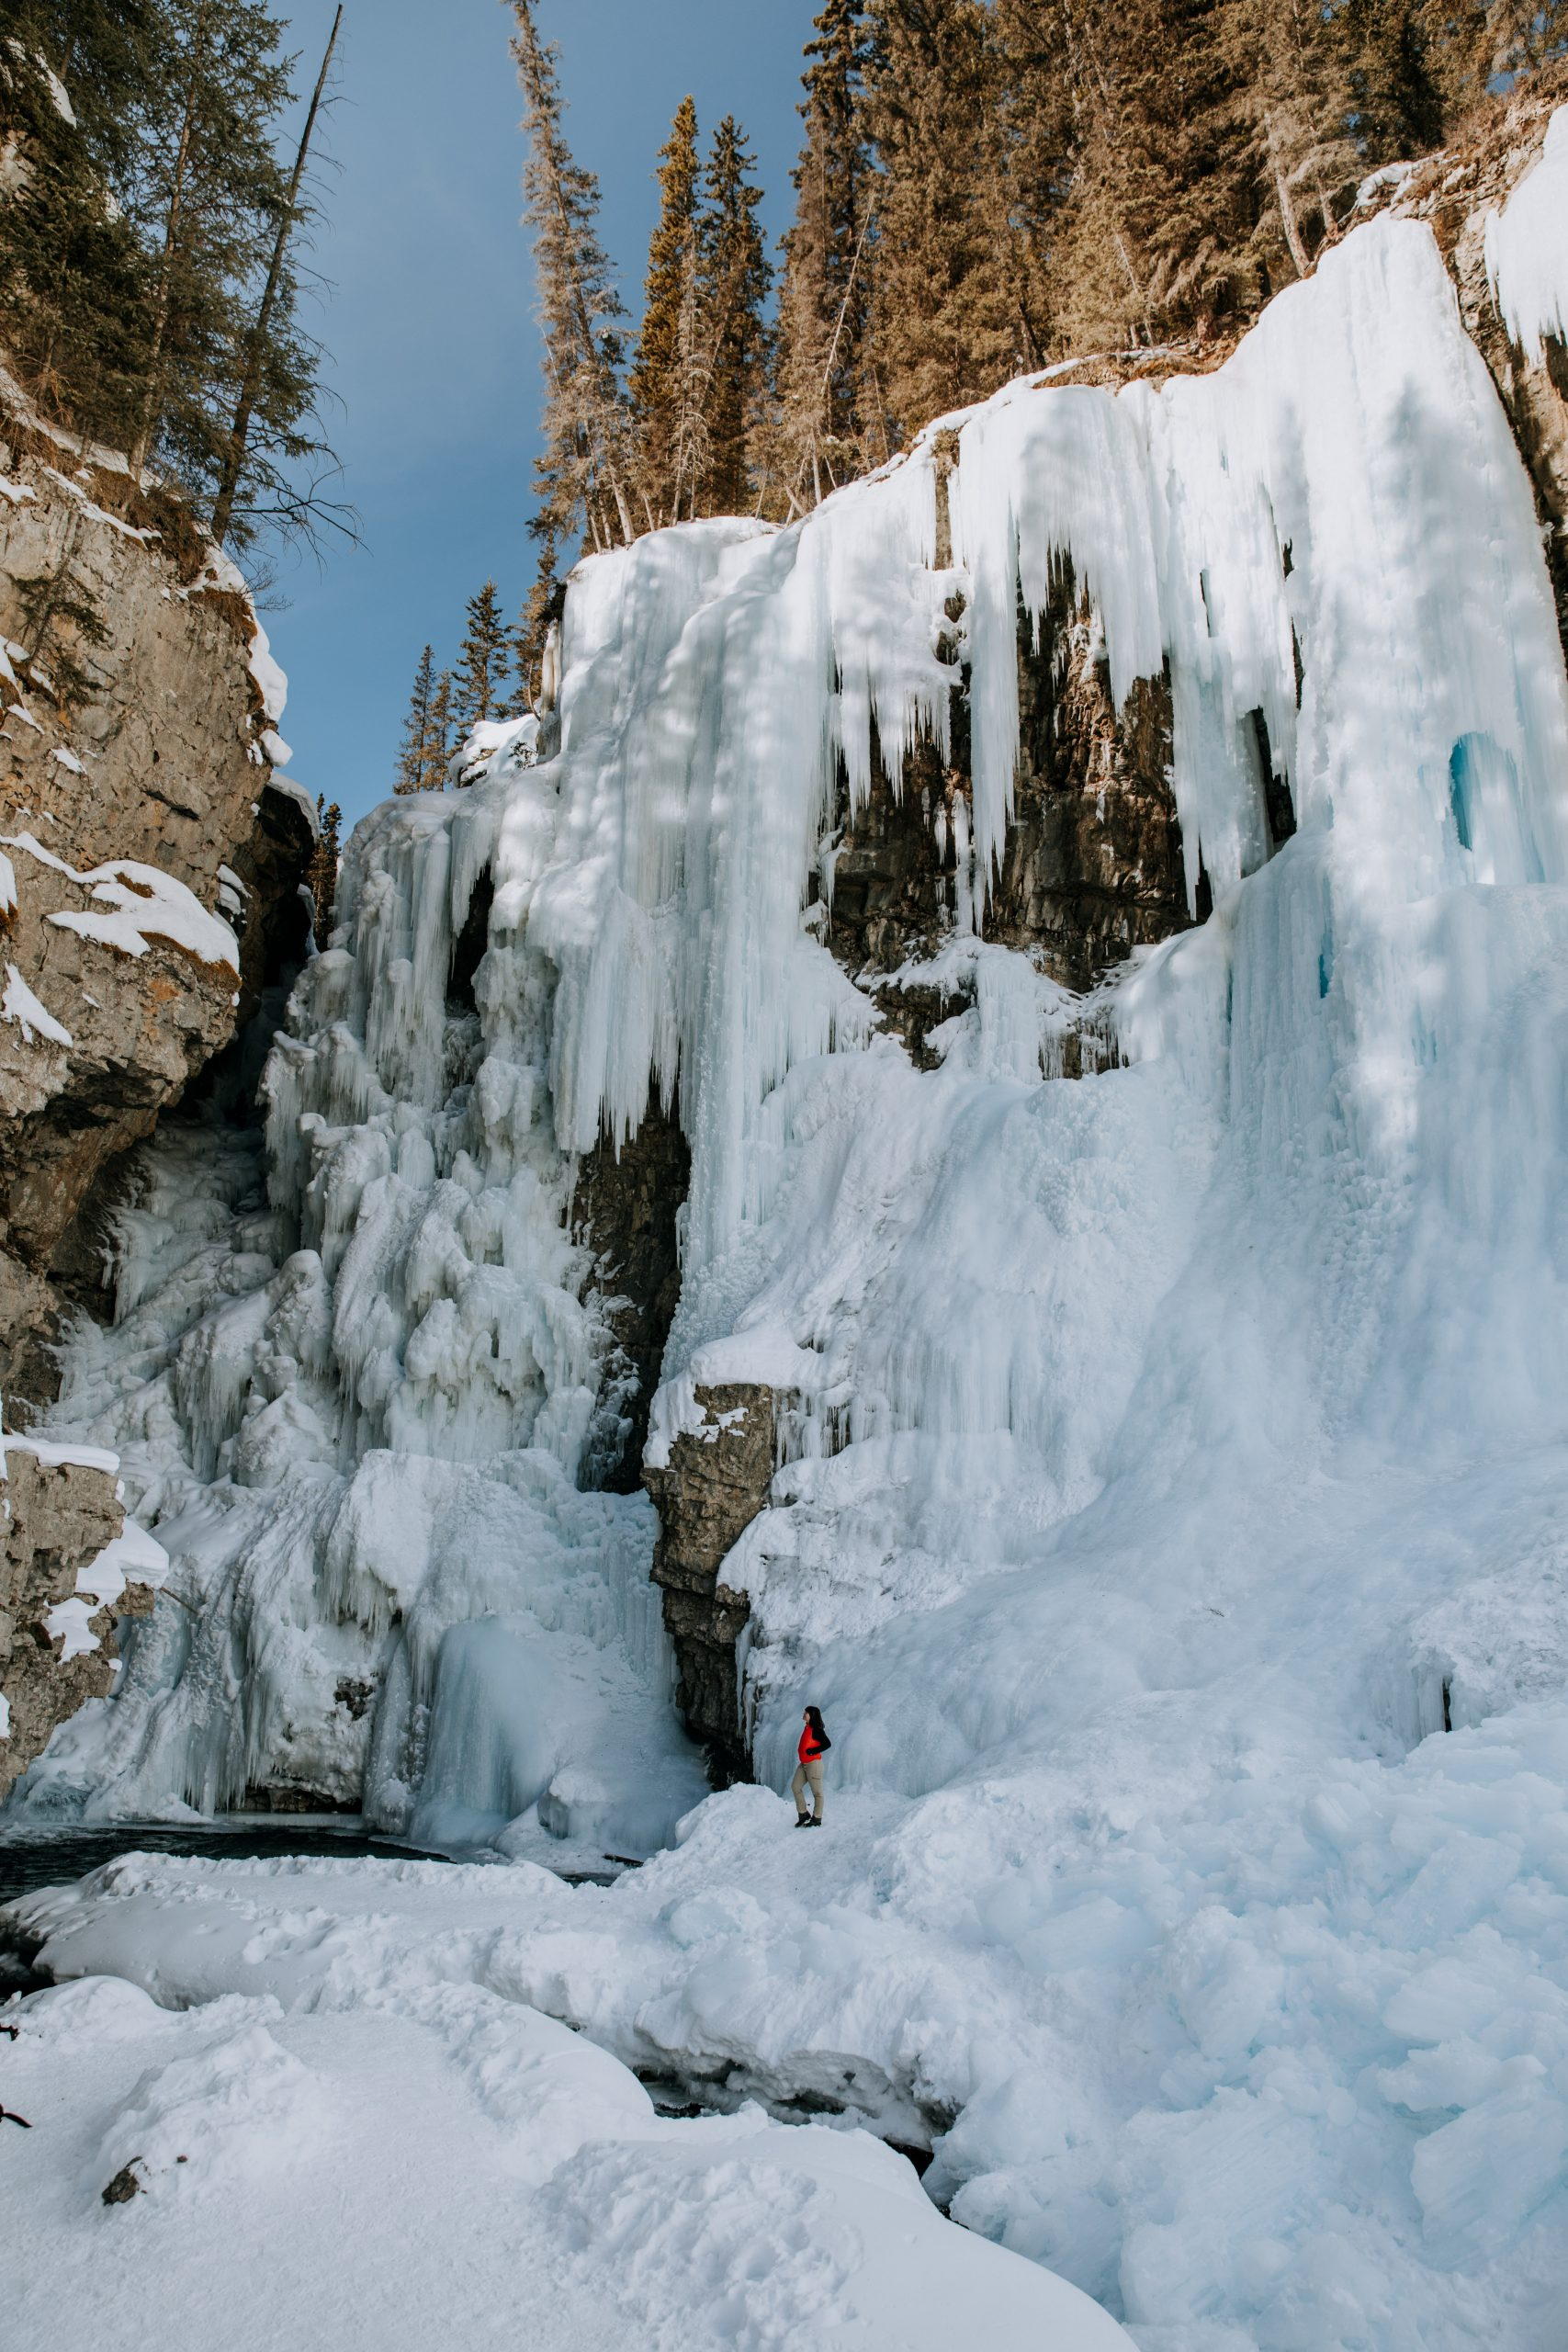 The Ultimate Banff Winter Guide - Johnston Canyon ice climbing